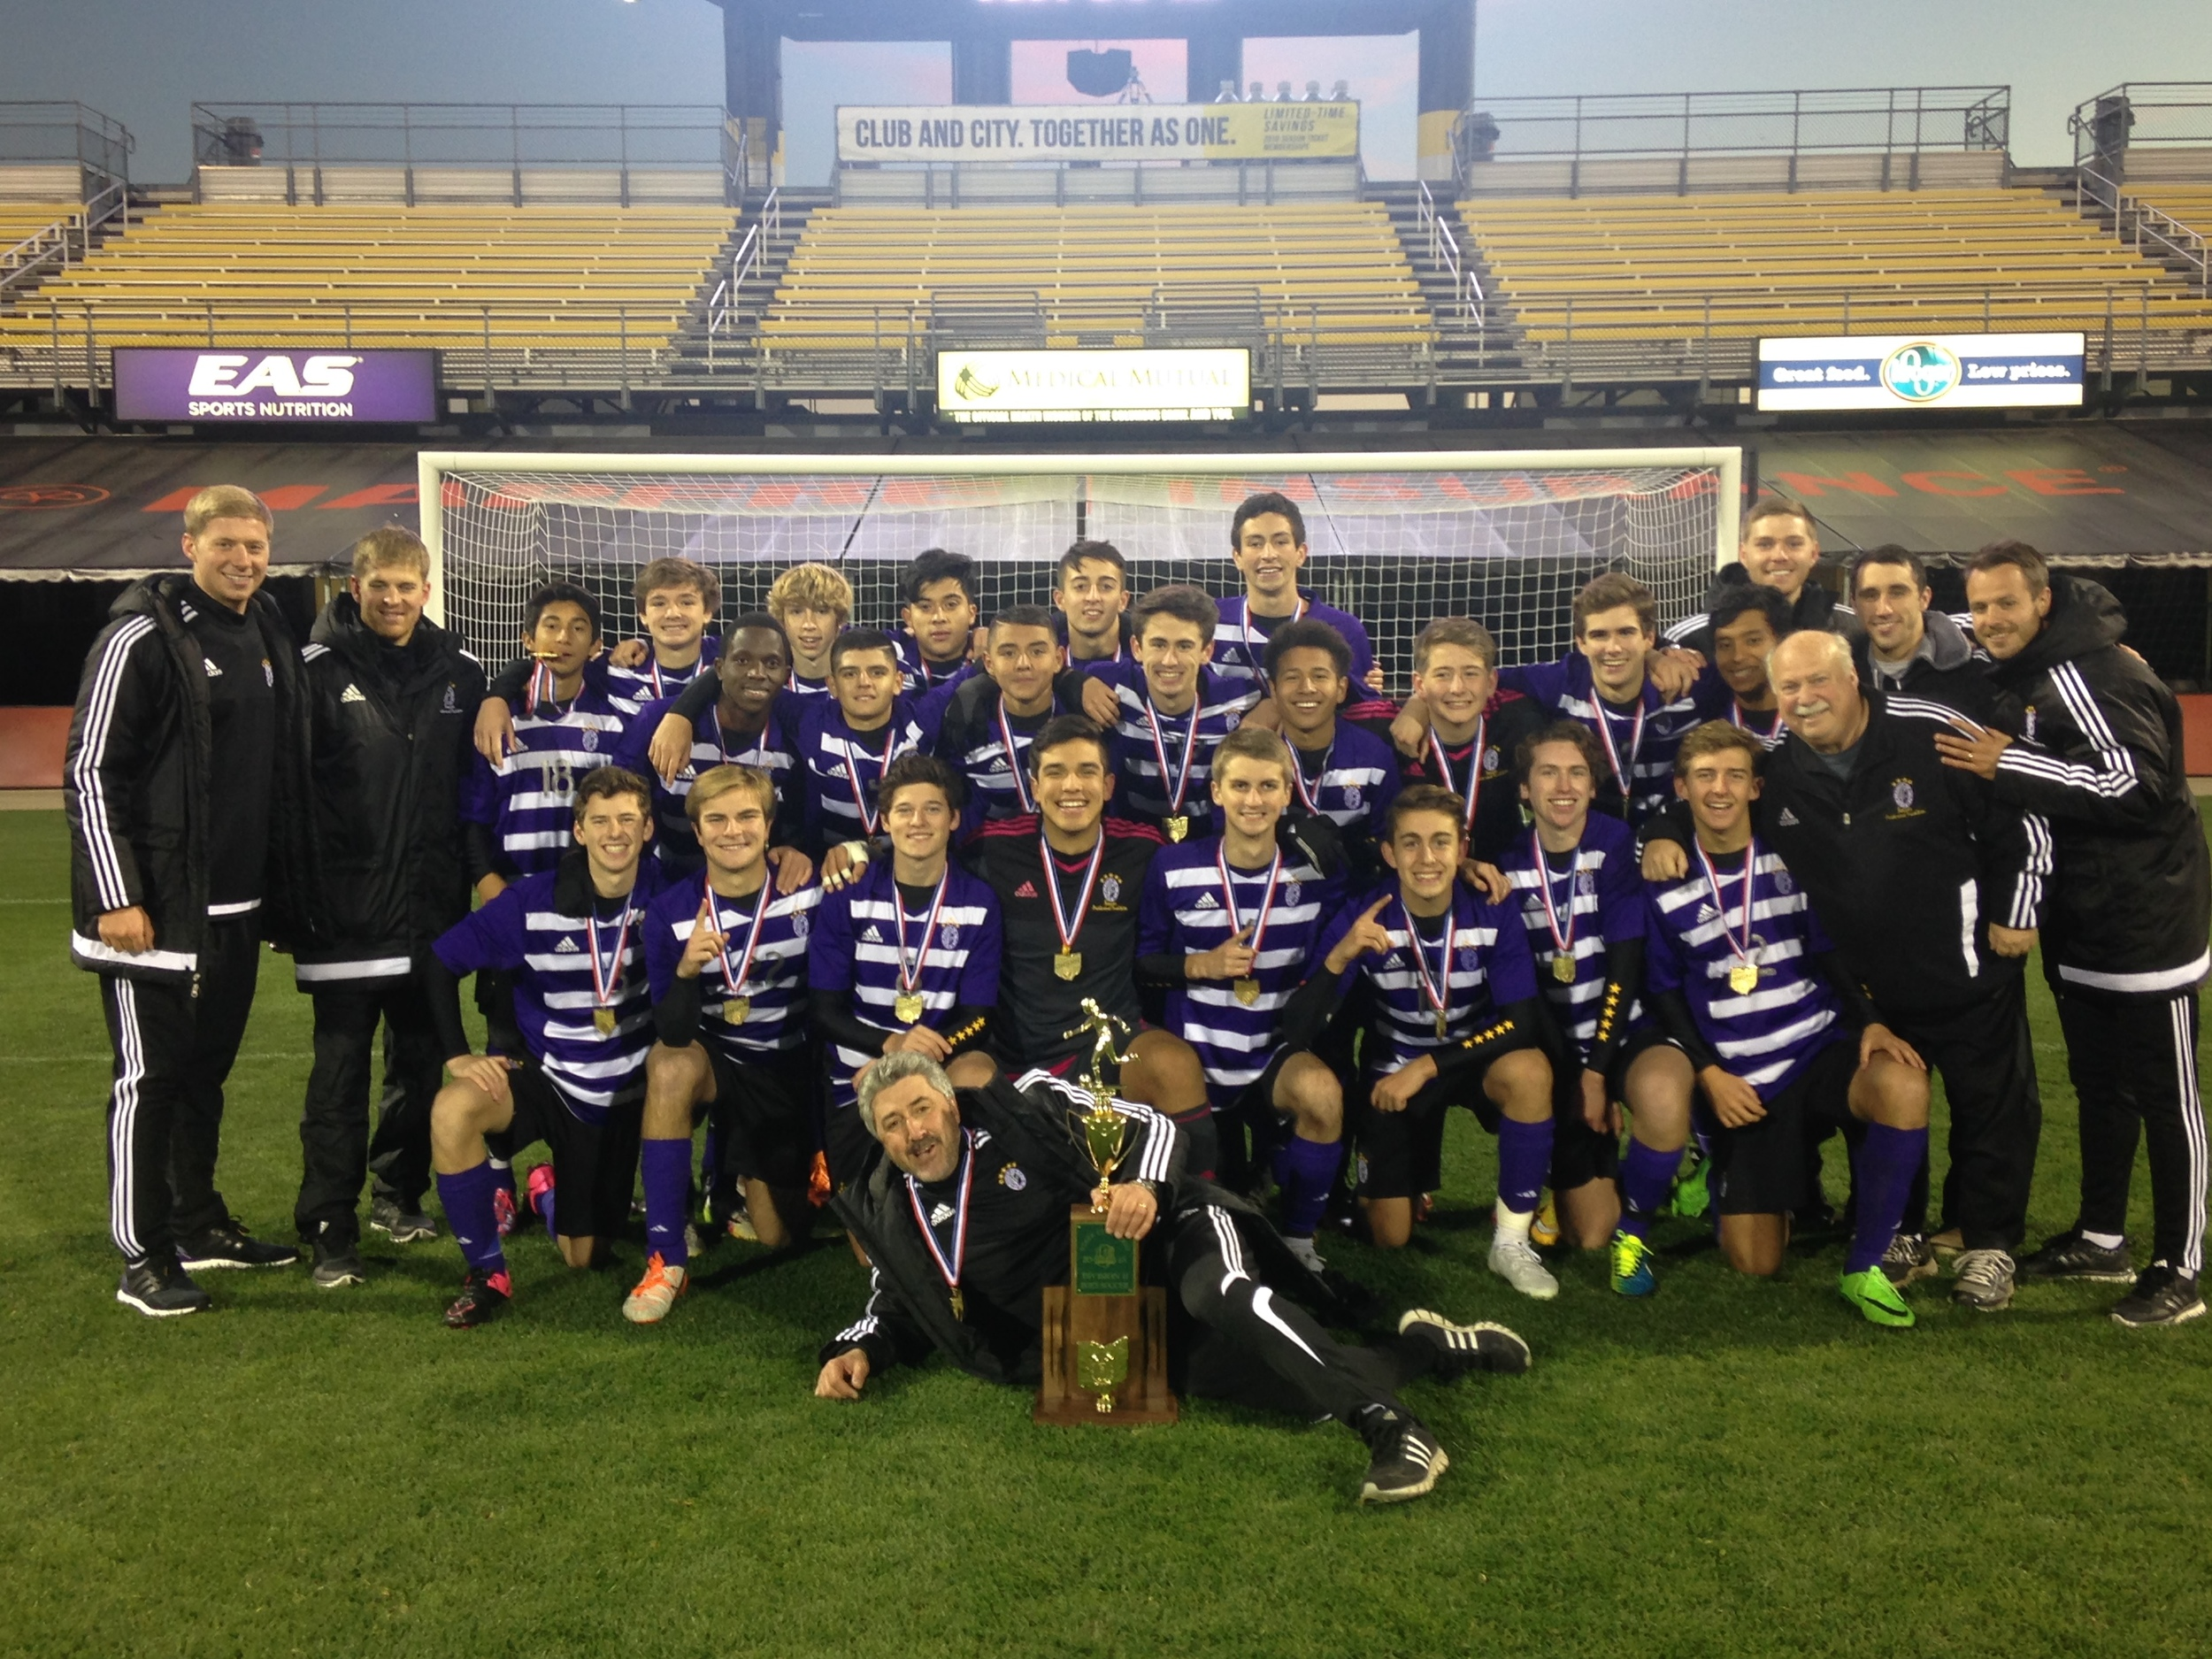 2015 Division-II State Champions